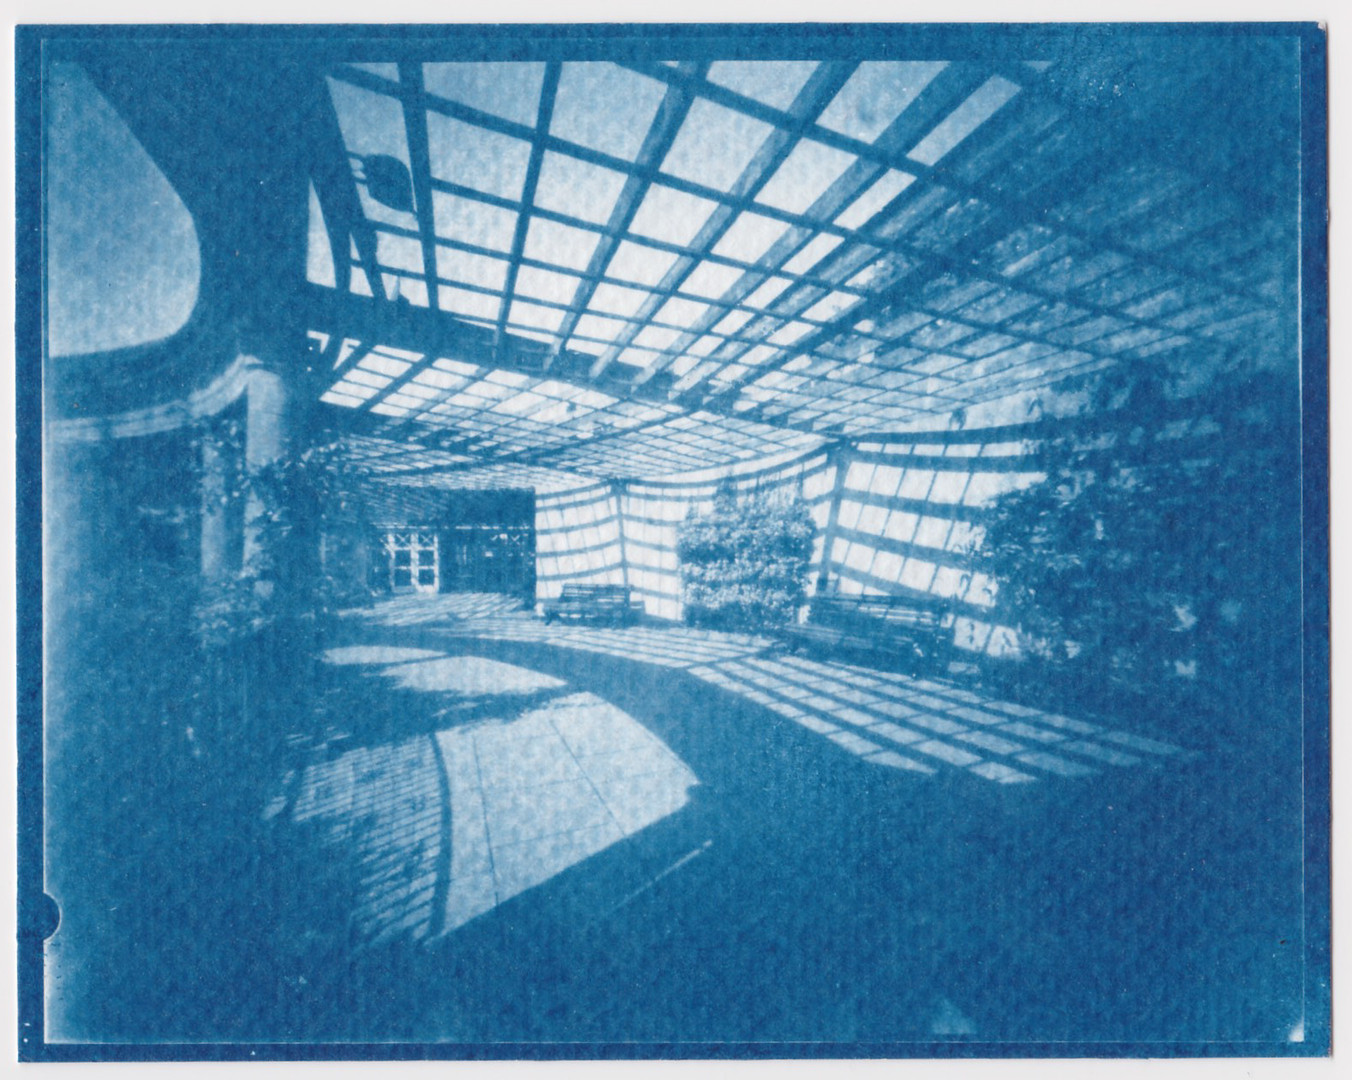 Cyanotype from 5x4 Negative